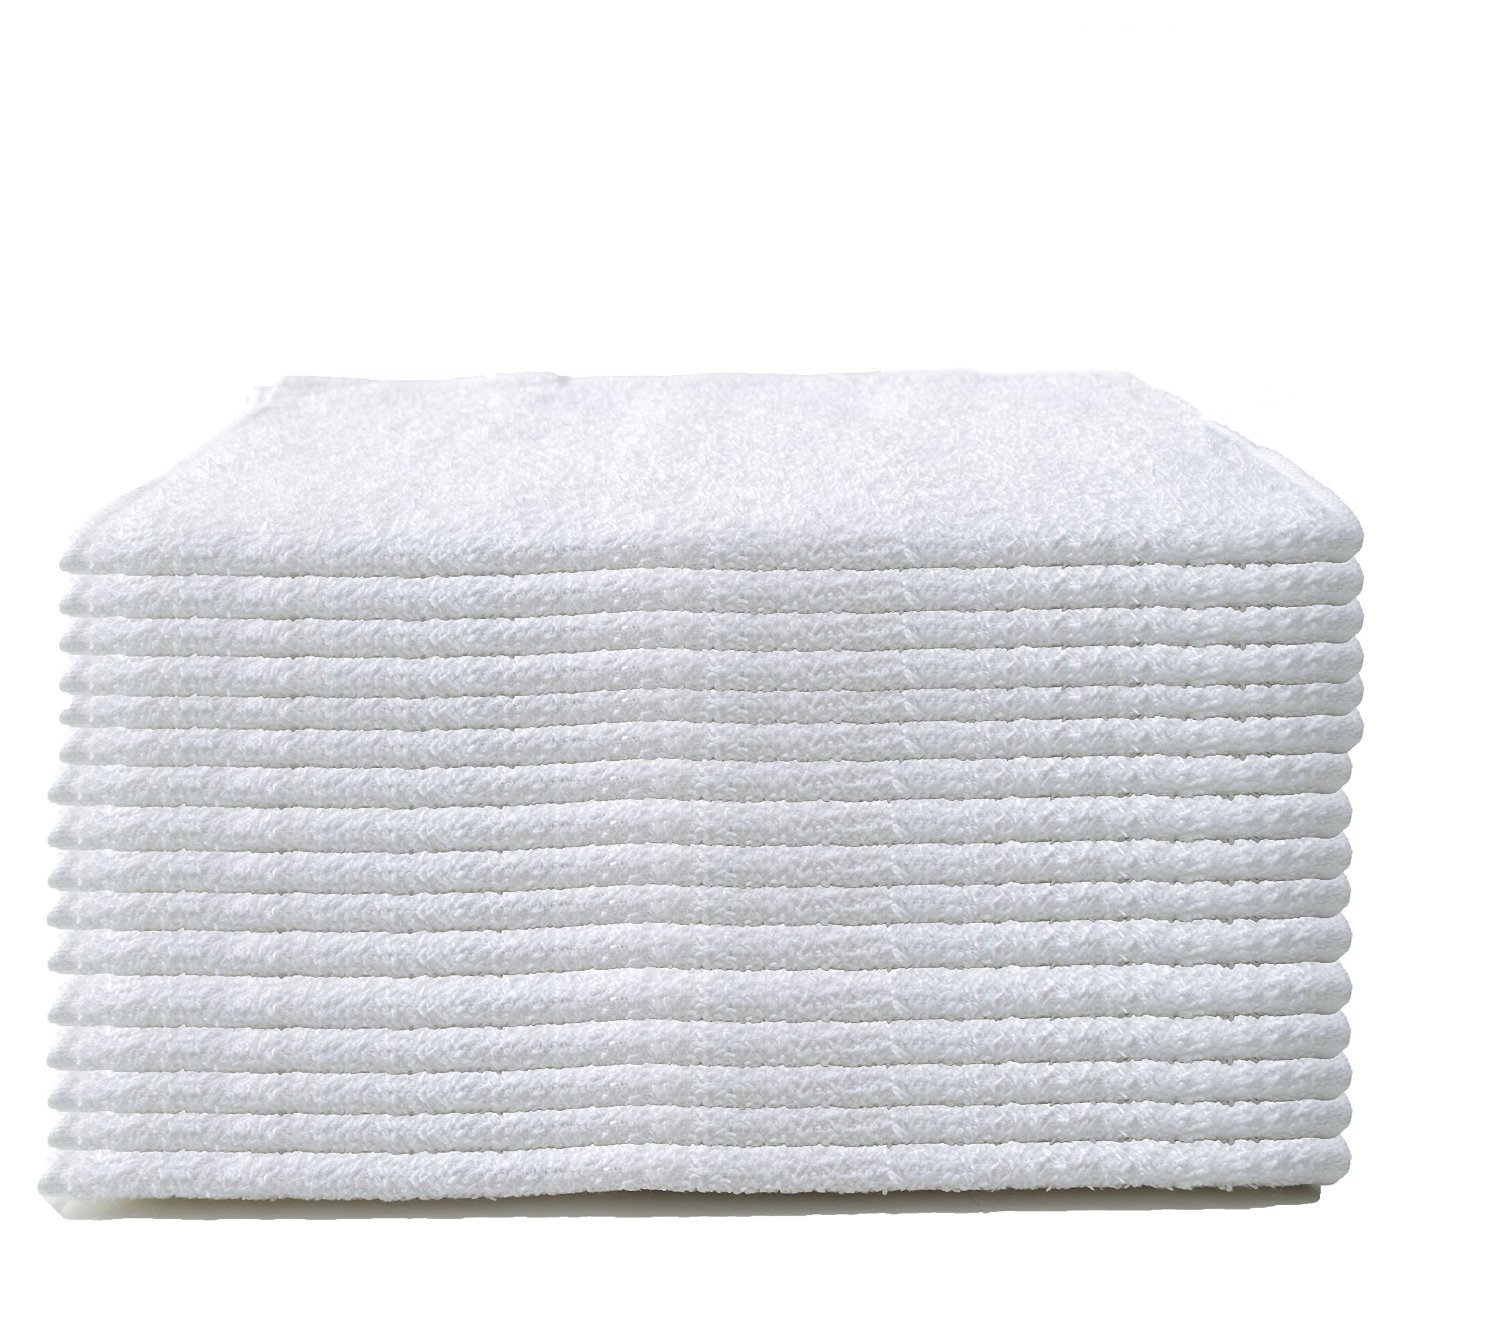 """Cleaning Solutions 79118 60 Pack Soft Plush Cotton Terry Towels 14"""" x 17"""" All Purpose Use, Ideal for Home, Auto and Commercial Cleaning"""